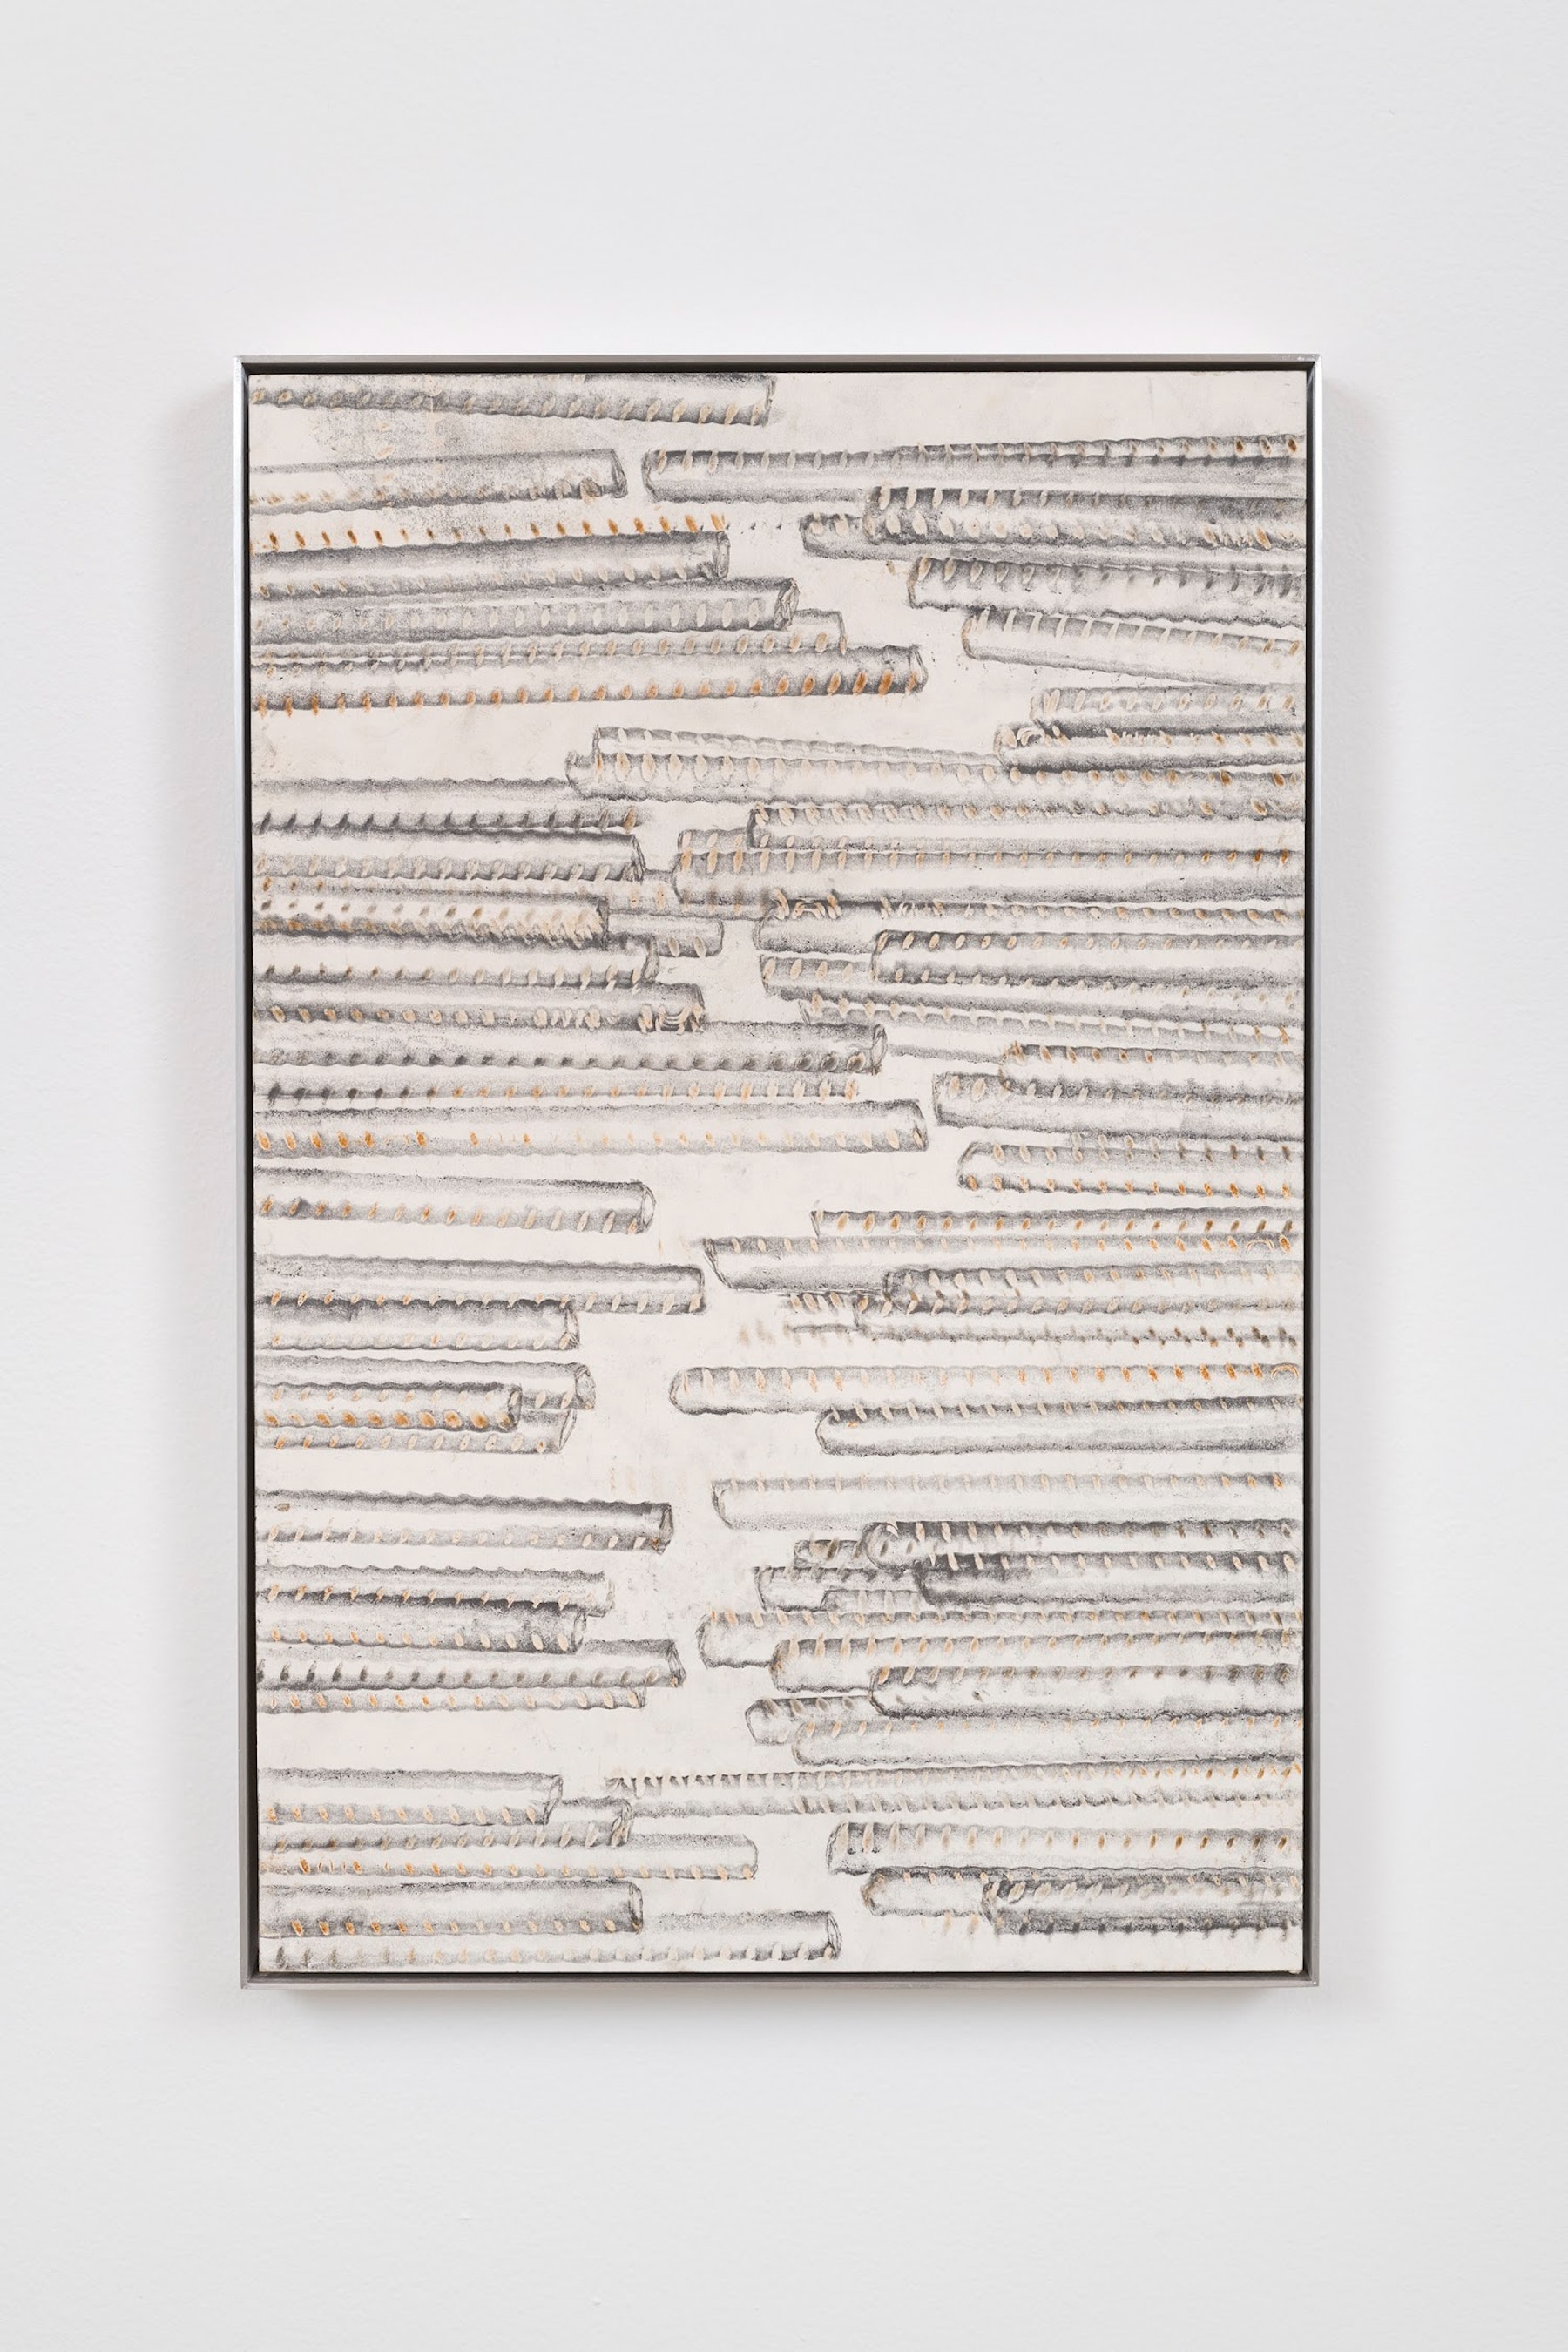 """Ruben Ochoa """"Untitled,"""" 2017 Intaglio with rust and graphite on paper 25"""" x 16 ¹⁄₂"""" x 1 ¹⁄₂"""" [HxWxD] (63.5 x 41.91 x 3.81 cm) Inventory #OCH353 Courtesy of the artist and Vielmetter Los Angeles Photo credit: Jeff McLane Signed and dated in ink on recto"""